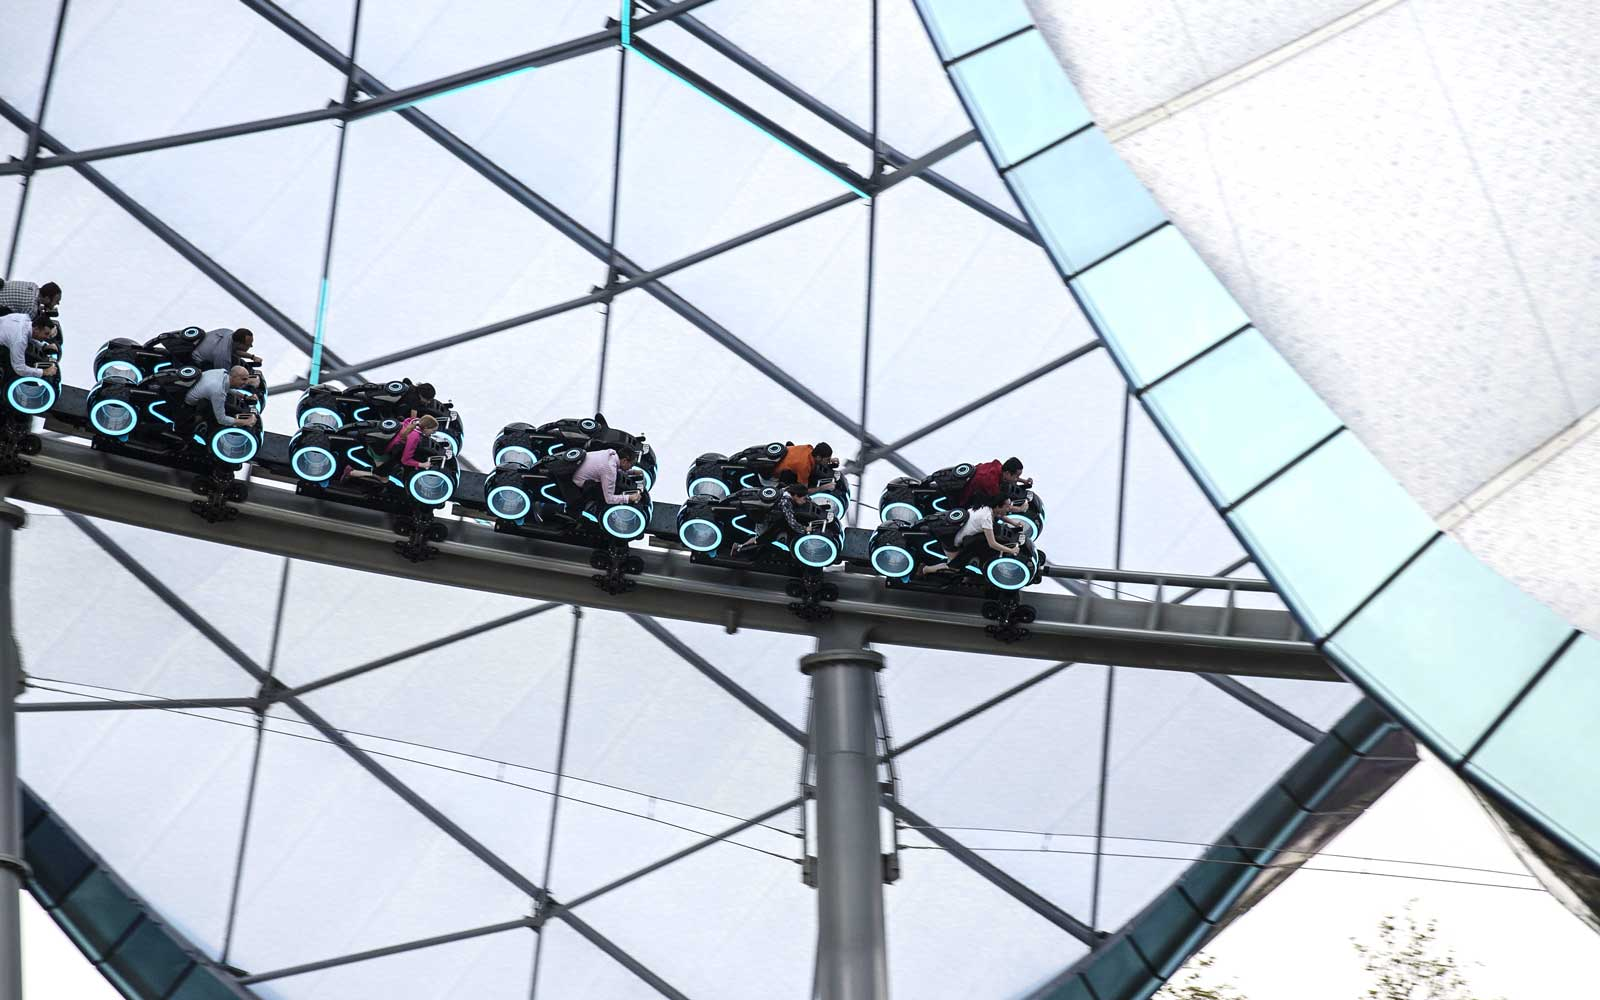 Get Excited The Tron Roller Coaster Is Coming To Disney